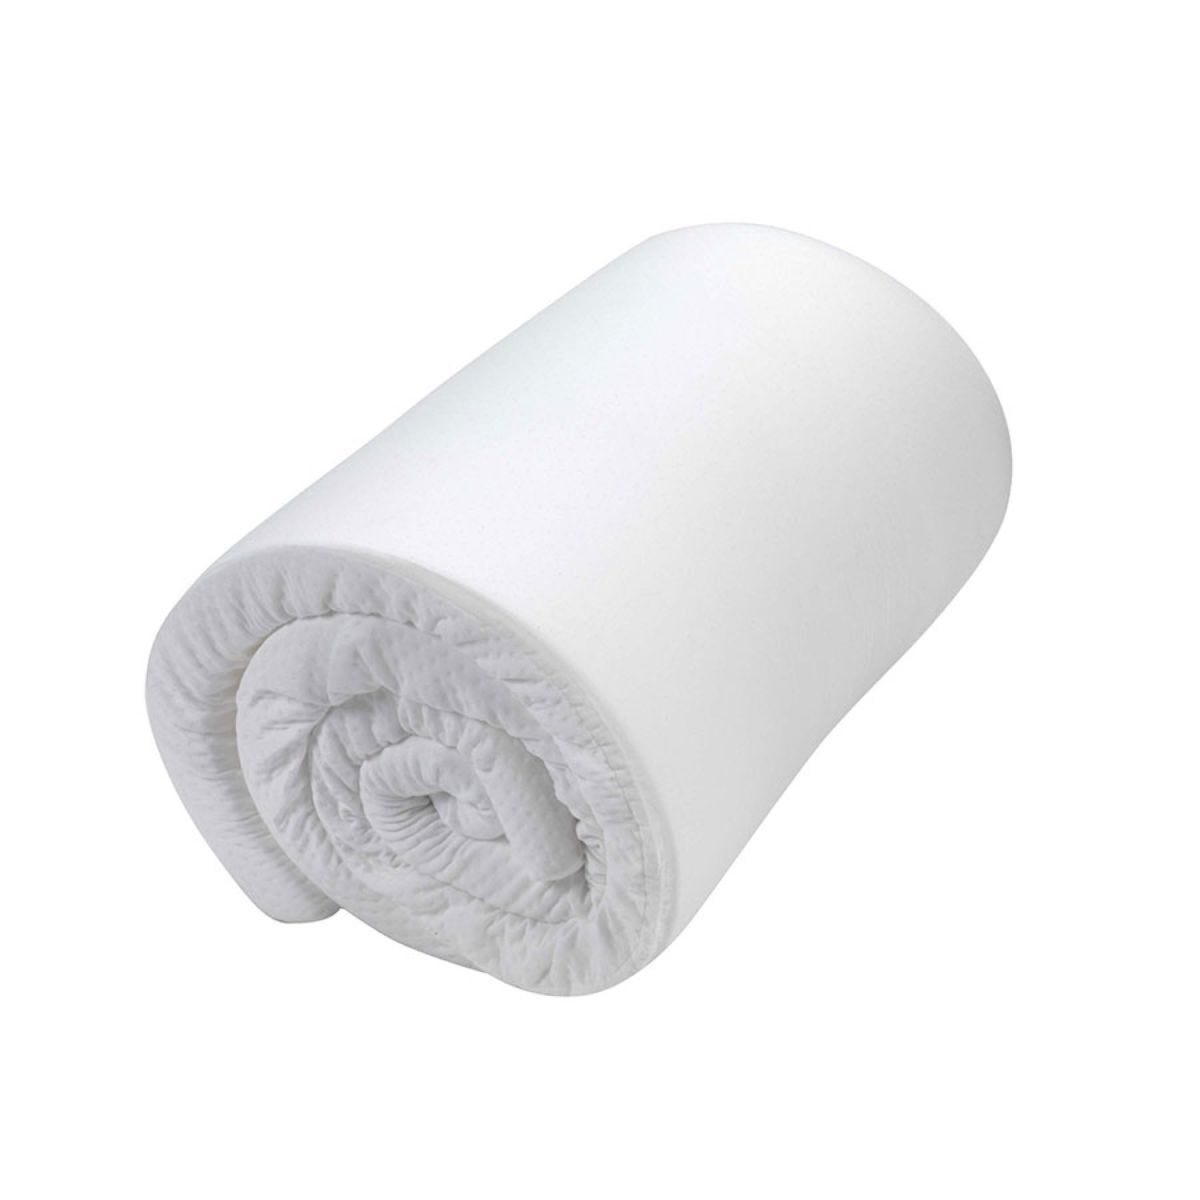 Homedics Climate Control Coolmax Memory Foam Mattress Topper - White